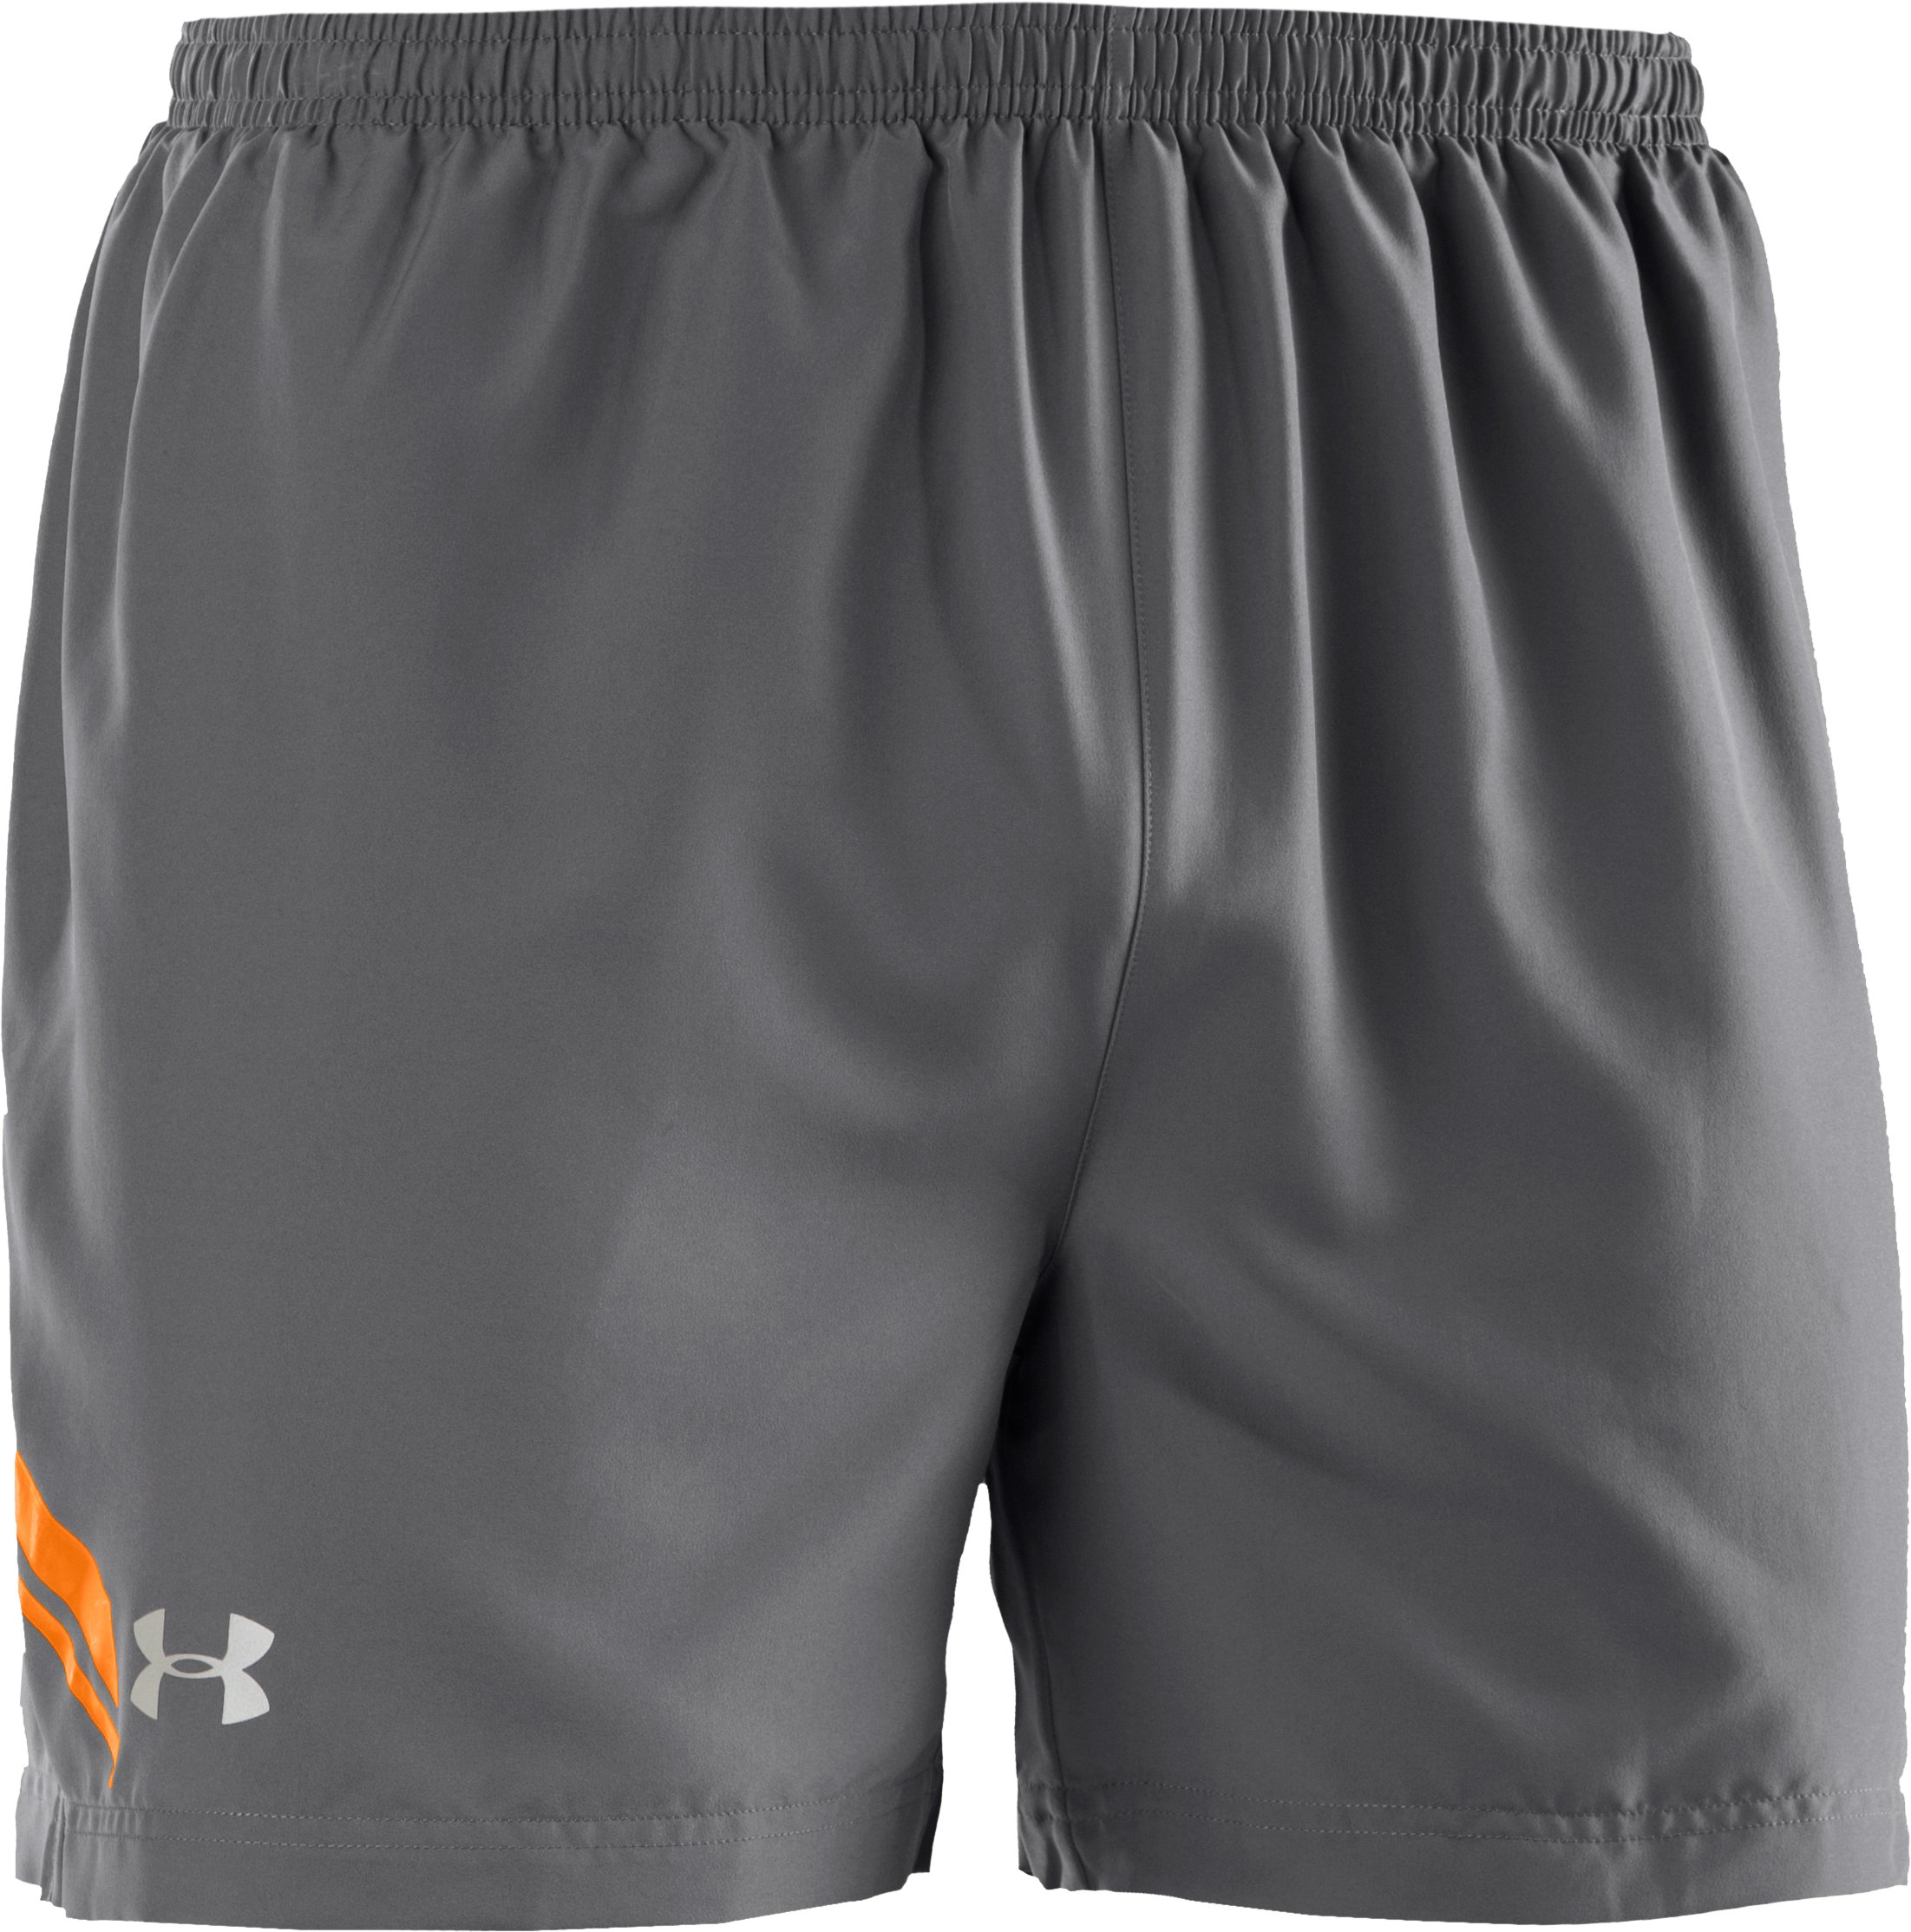 "Men's UA Escape 5"" Woven Shorts, Graphite"